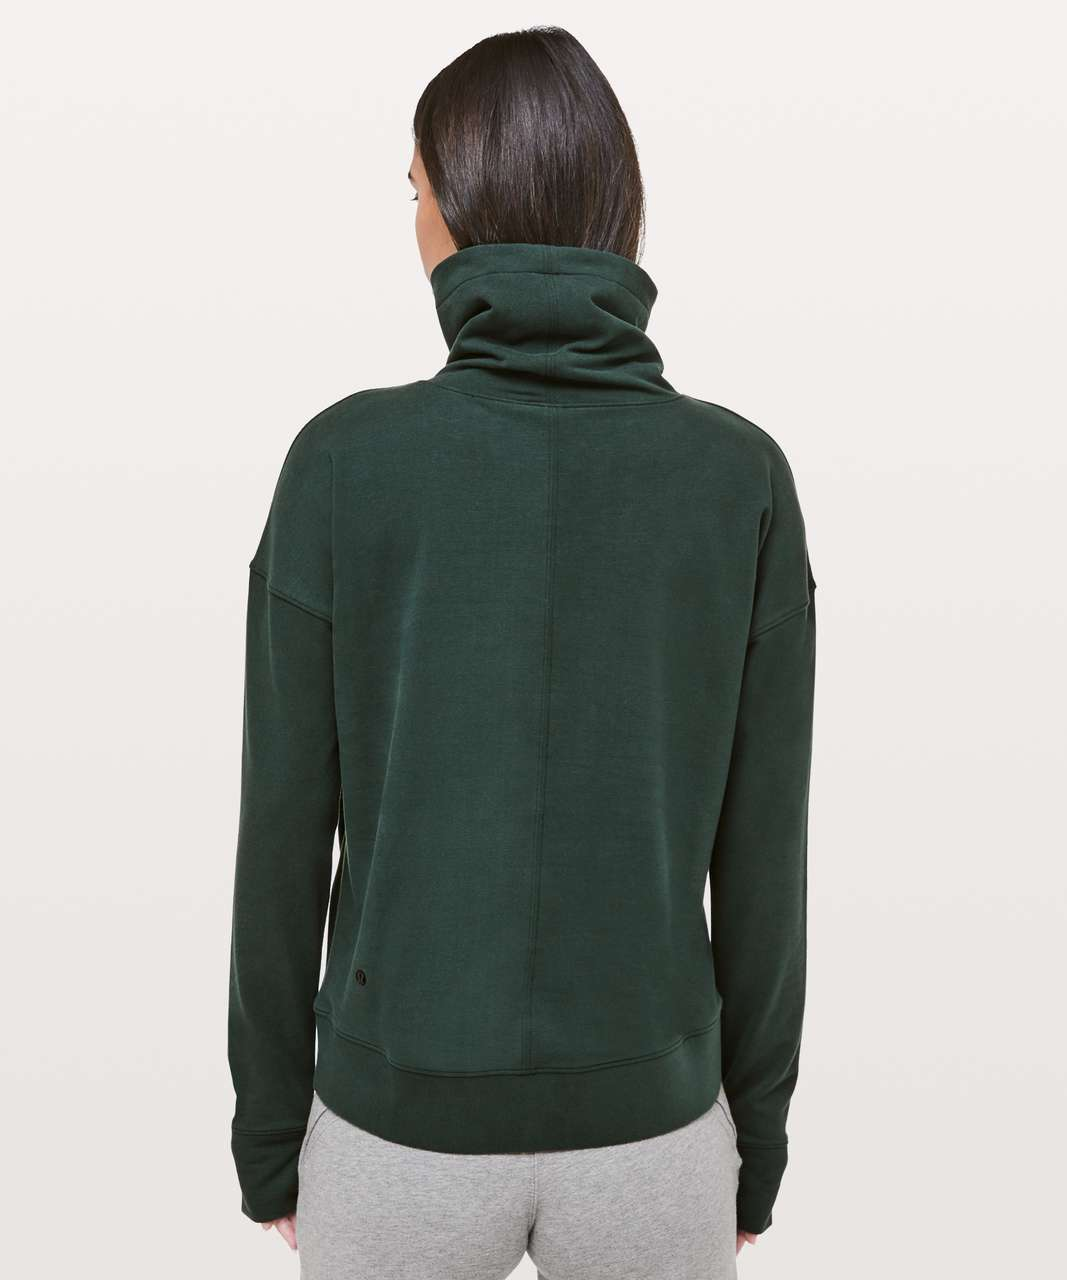 Lululemon Go Forward Pullover - Dark Fuel